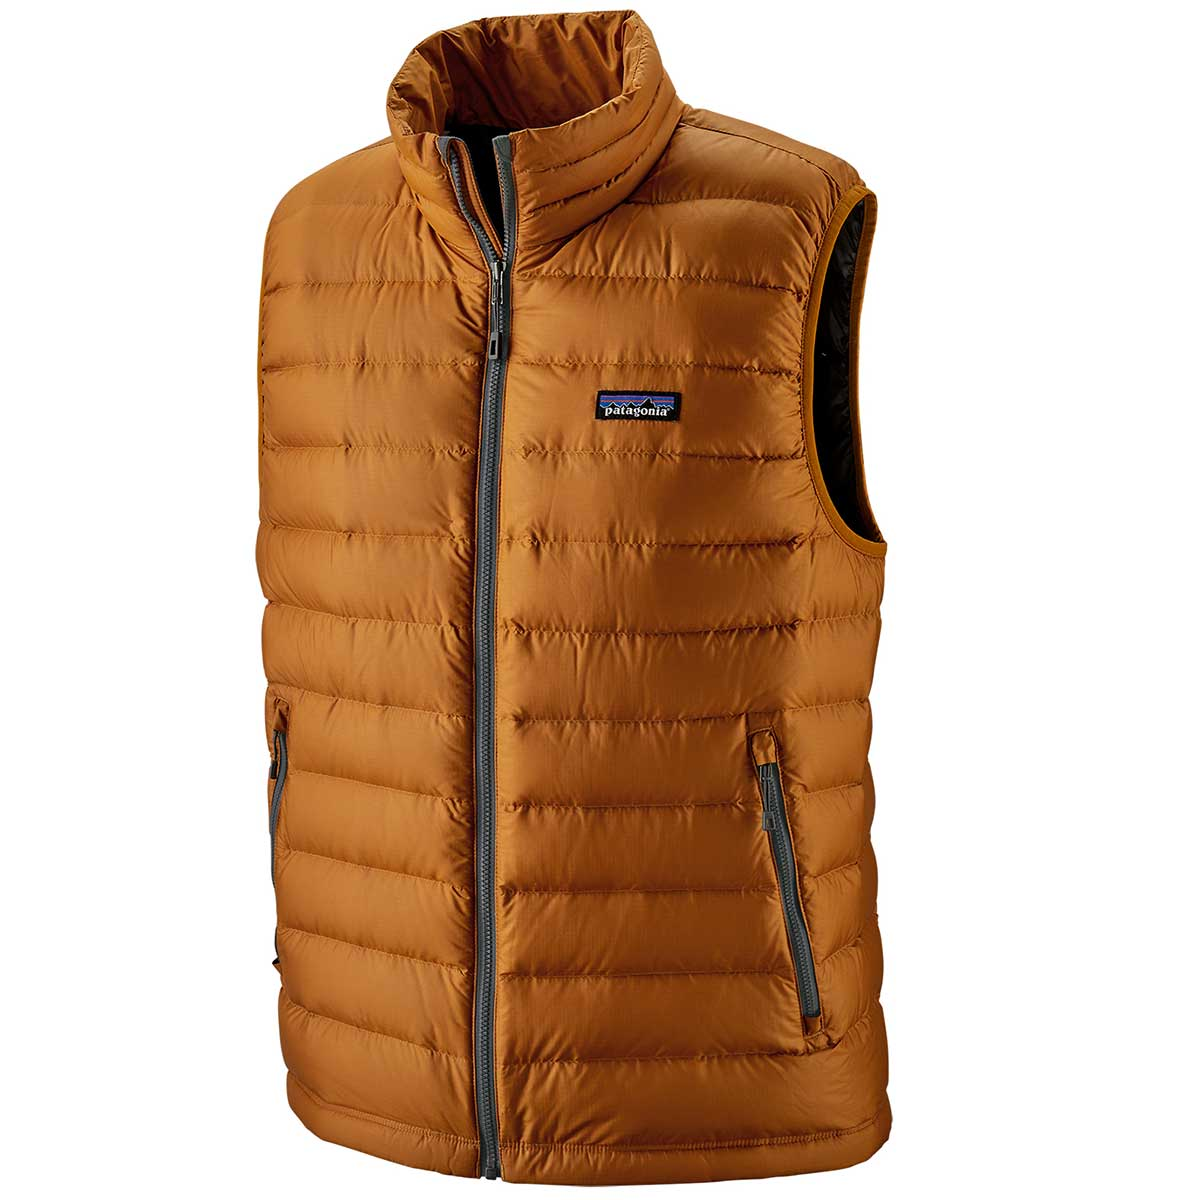 Patagonia men's Down Sweater Vest in Hammonds Gold front view